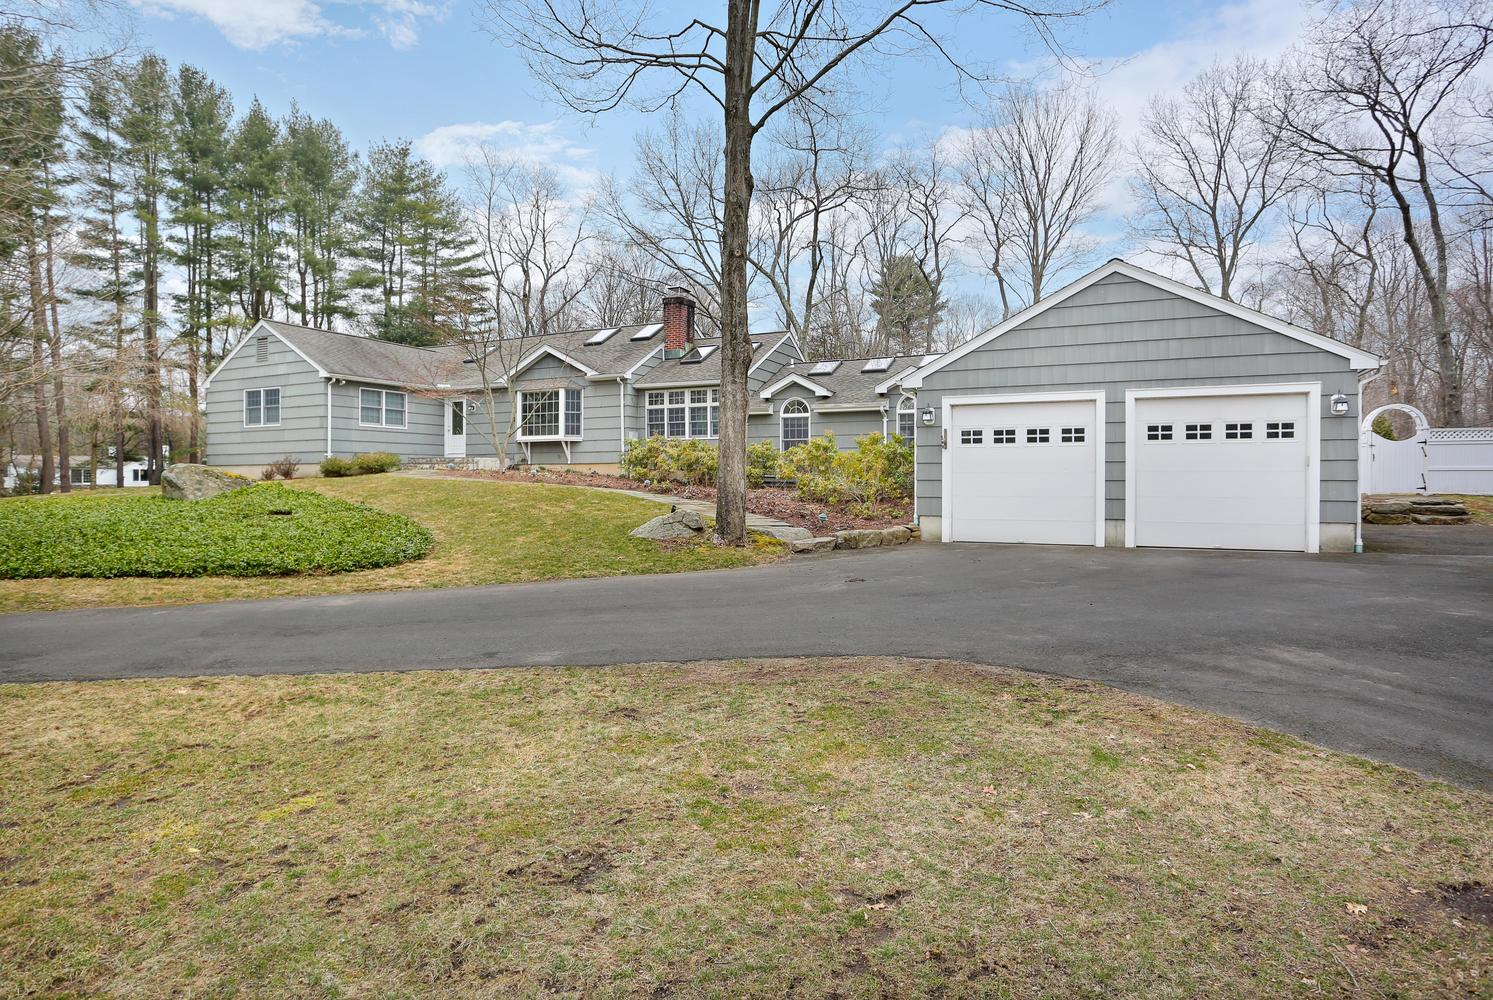 Wilton Real Estate Report (Dec. 20-26): Four Properties Sold but None Above $705,000